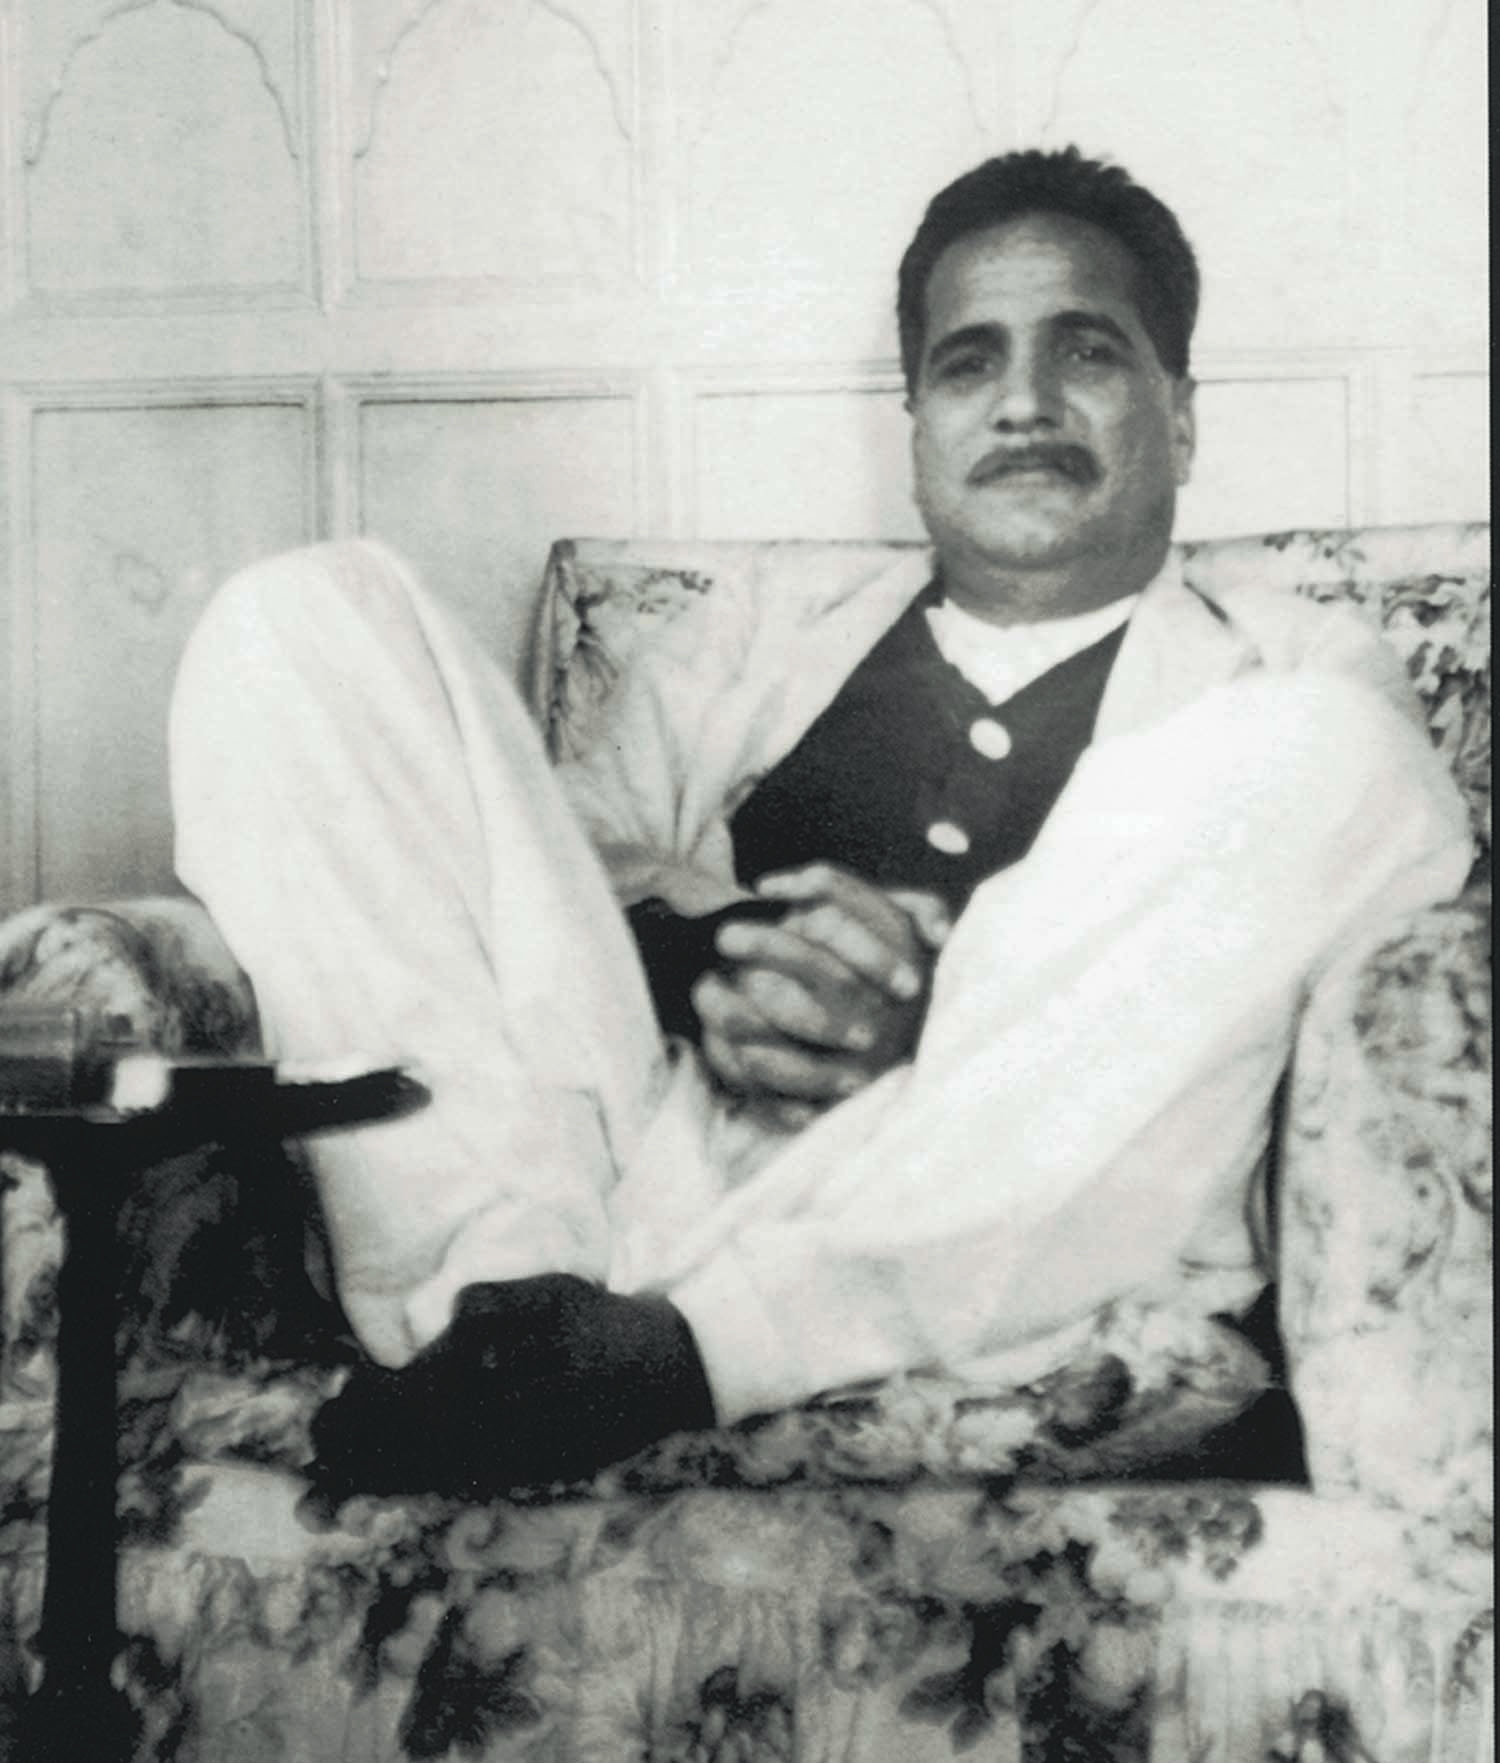 ALLAMA Iqbal relaxing at the residence of his friend Nawab Zulfiqar Ali Khan who was the chairman of the Anjuman-i-Himayat-i-Islam, an organisation that aimed at promoting Islamic values through education and intellectual activities.  | Photo: The Allama Iqbal Collection.